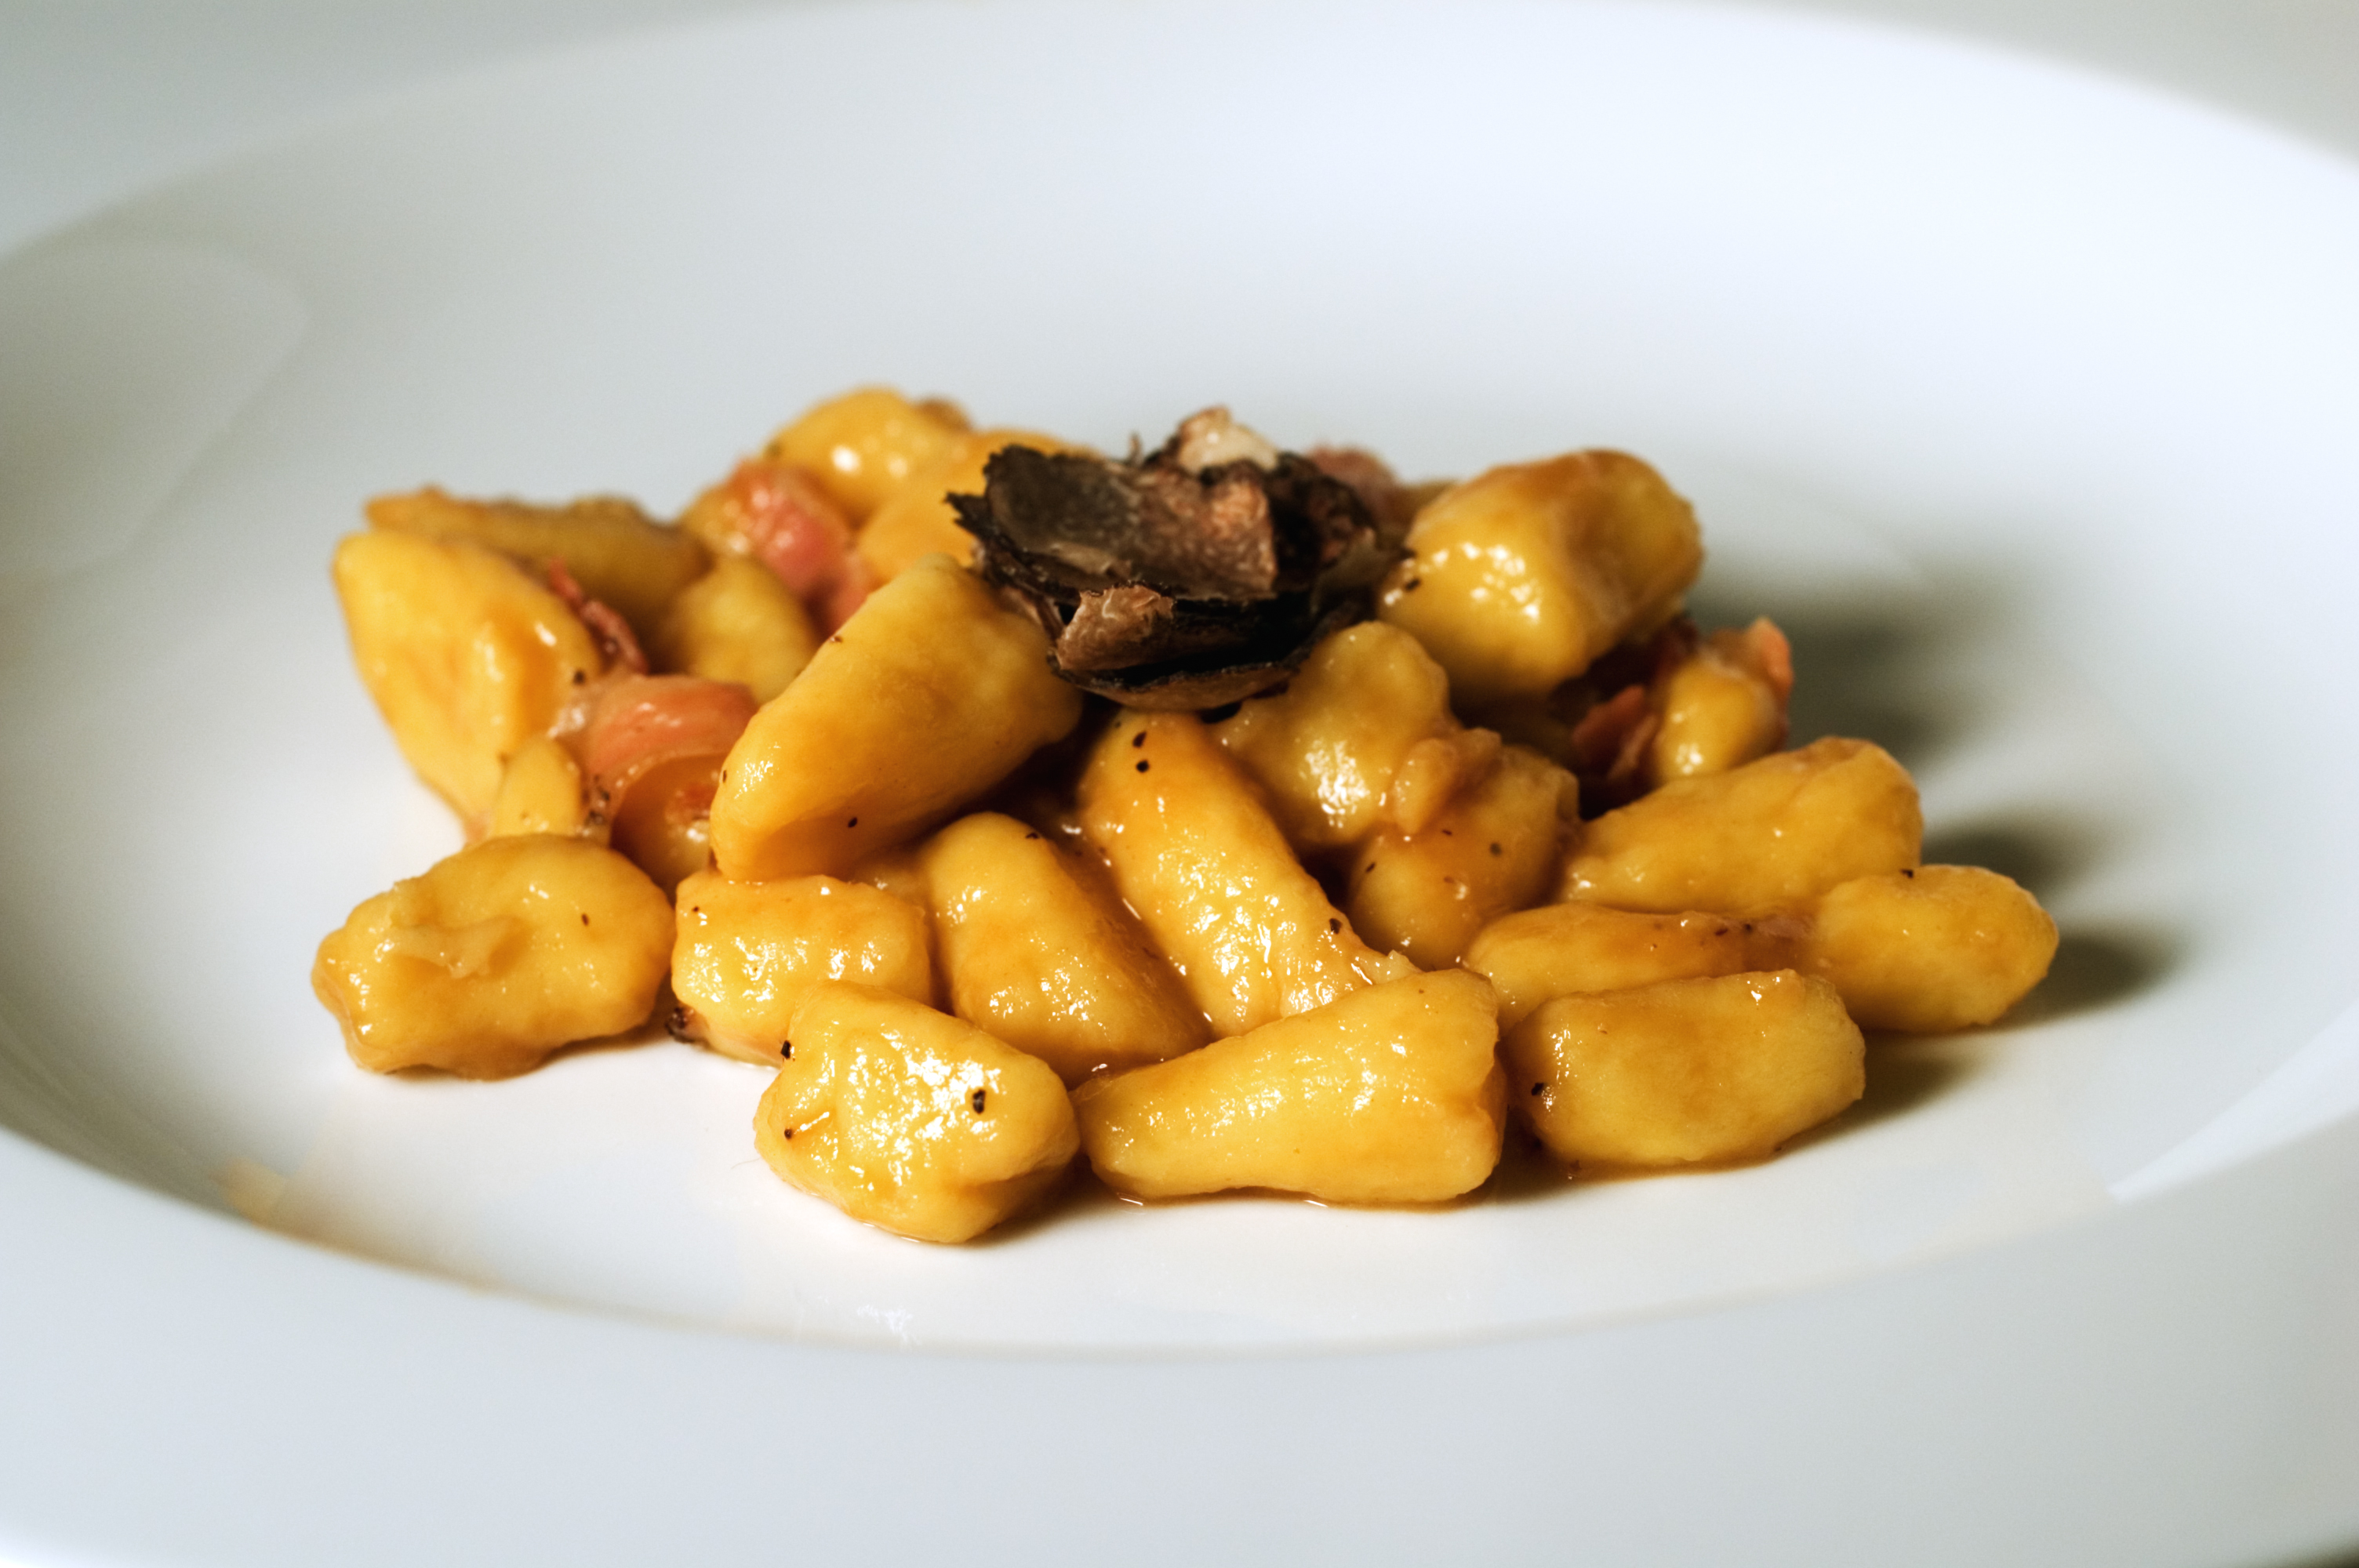 File:Gnocchi with truffle.jpg - Wikipedia, the free encyclopedia